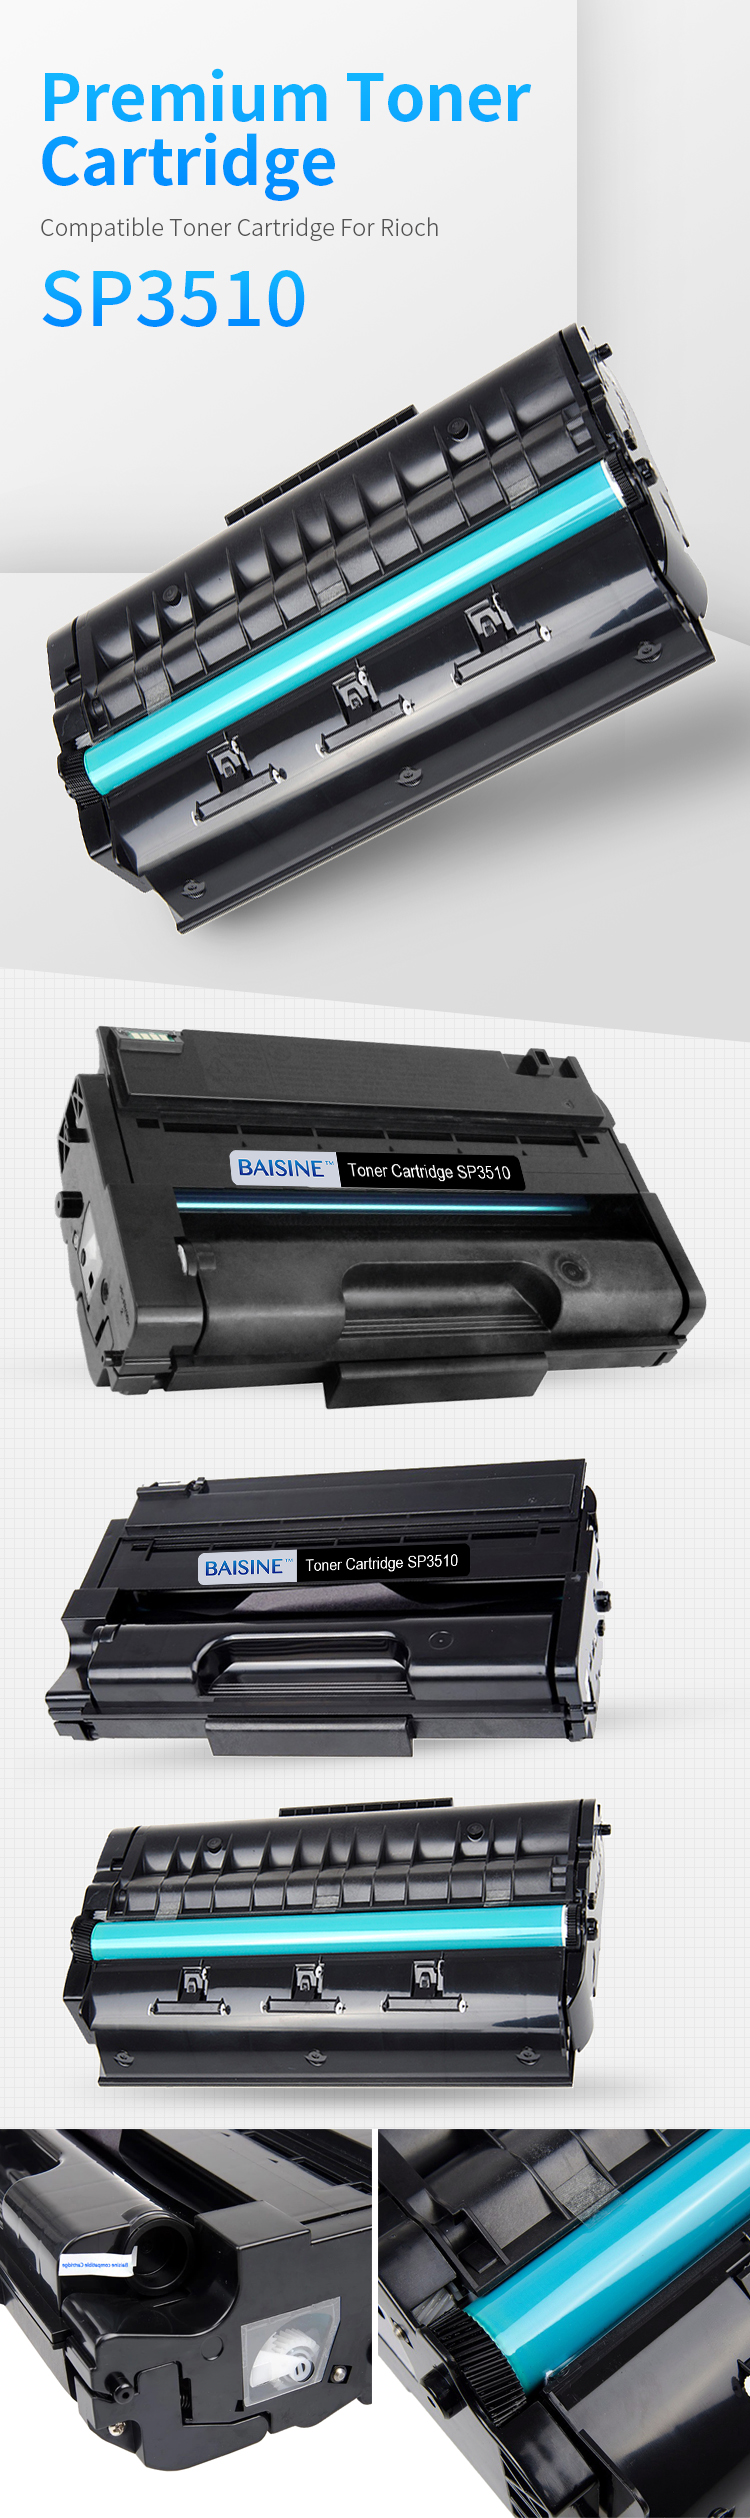 China Best Price premium Toner Cartridge SP3510 406989 3400SF 3410DN 3410SF SP3500 SP3510 Laser Printer Toner Cartridge 406989